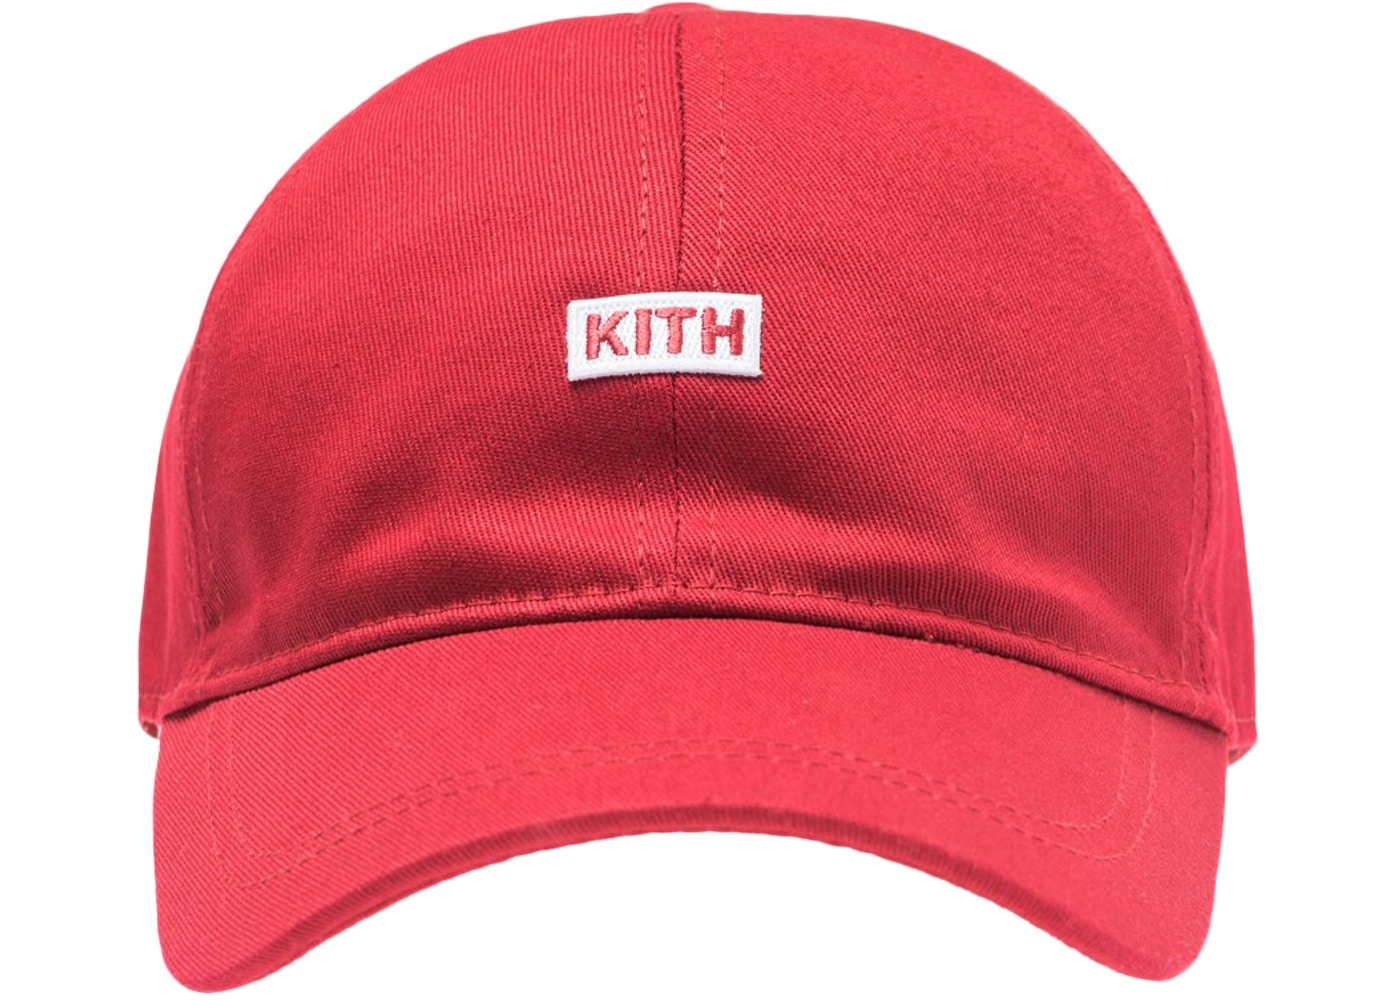 ce056e3a4bd Kith Nyc KITH X COCA-COLA - CLASSIC KITH COKE LOGO CAP   HAT - RED - ONE  SIZE Size one size - Hats for Sale - Grailed